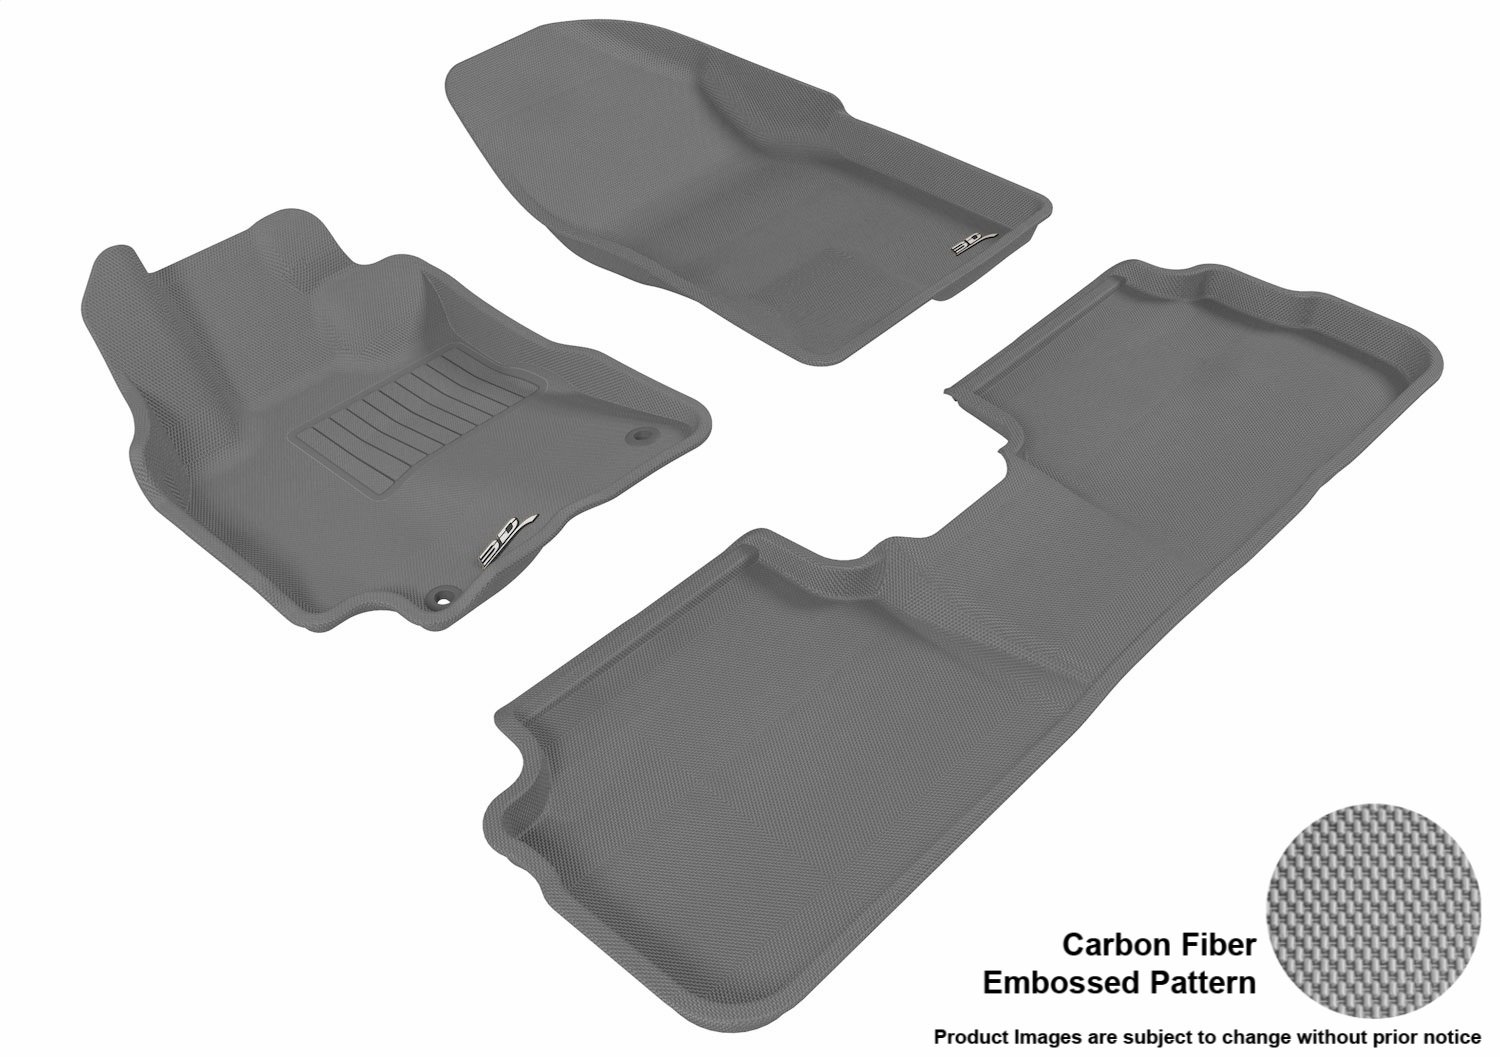 Tan Kagu Rubber 3D MAXpider L1TY05921502 Second Row Custom Fit All-Weather Floor Mat for Select Toyota Corolla Models